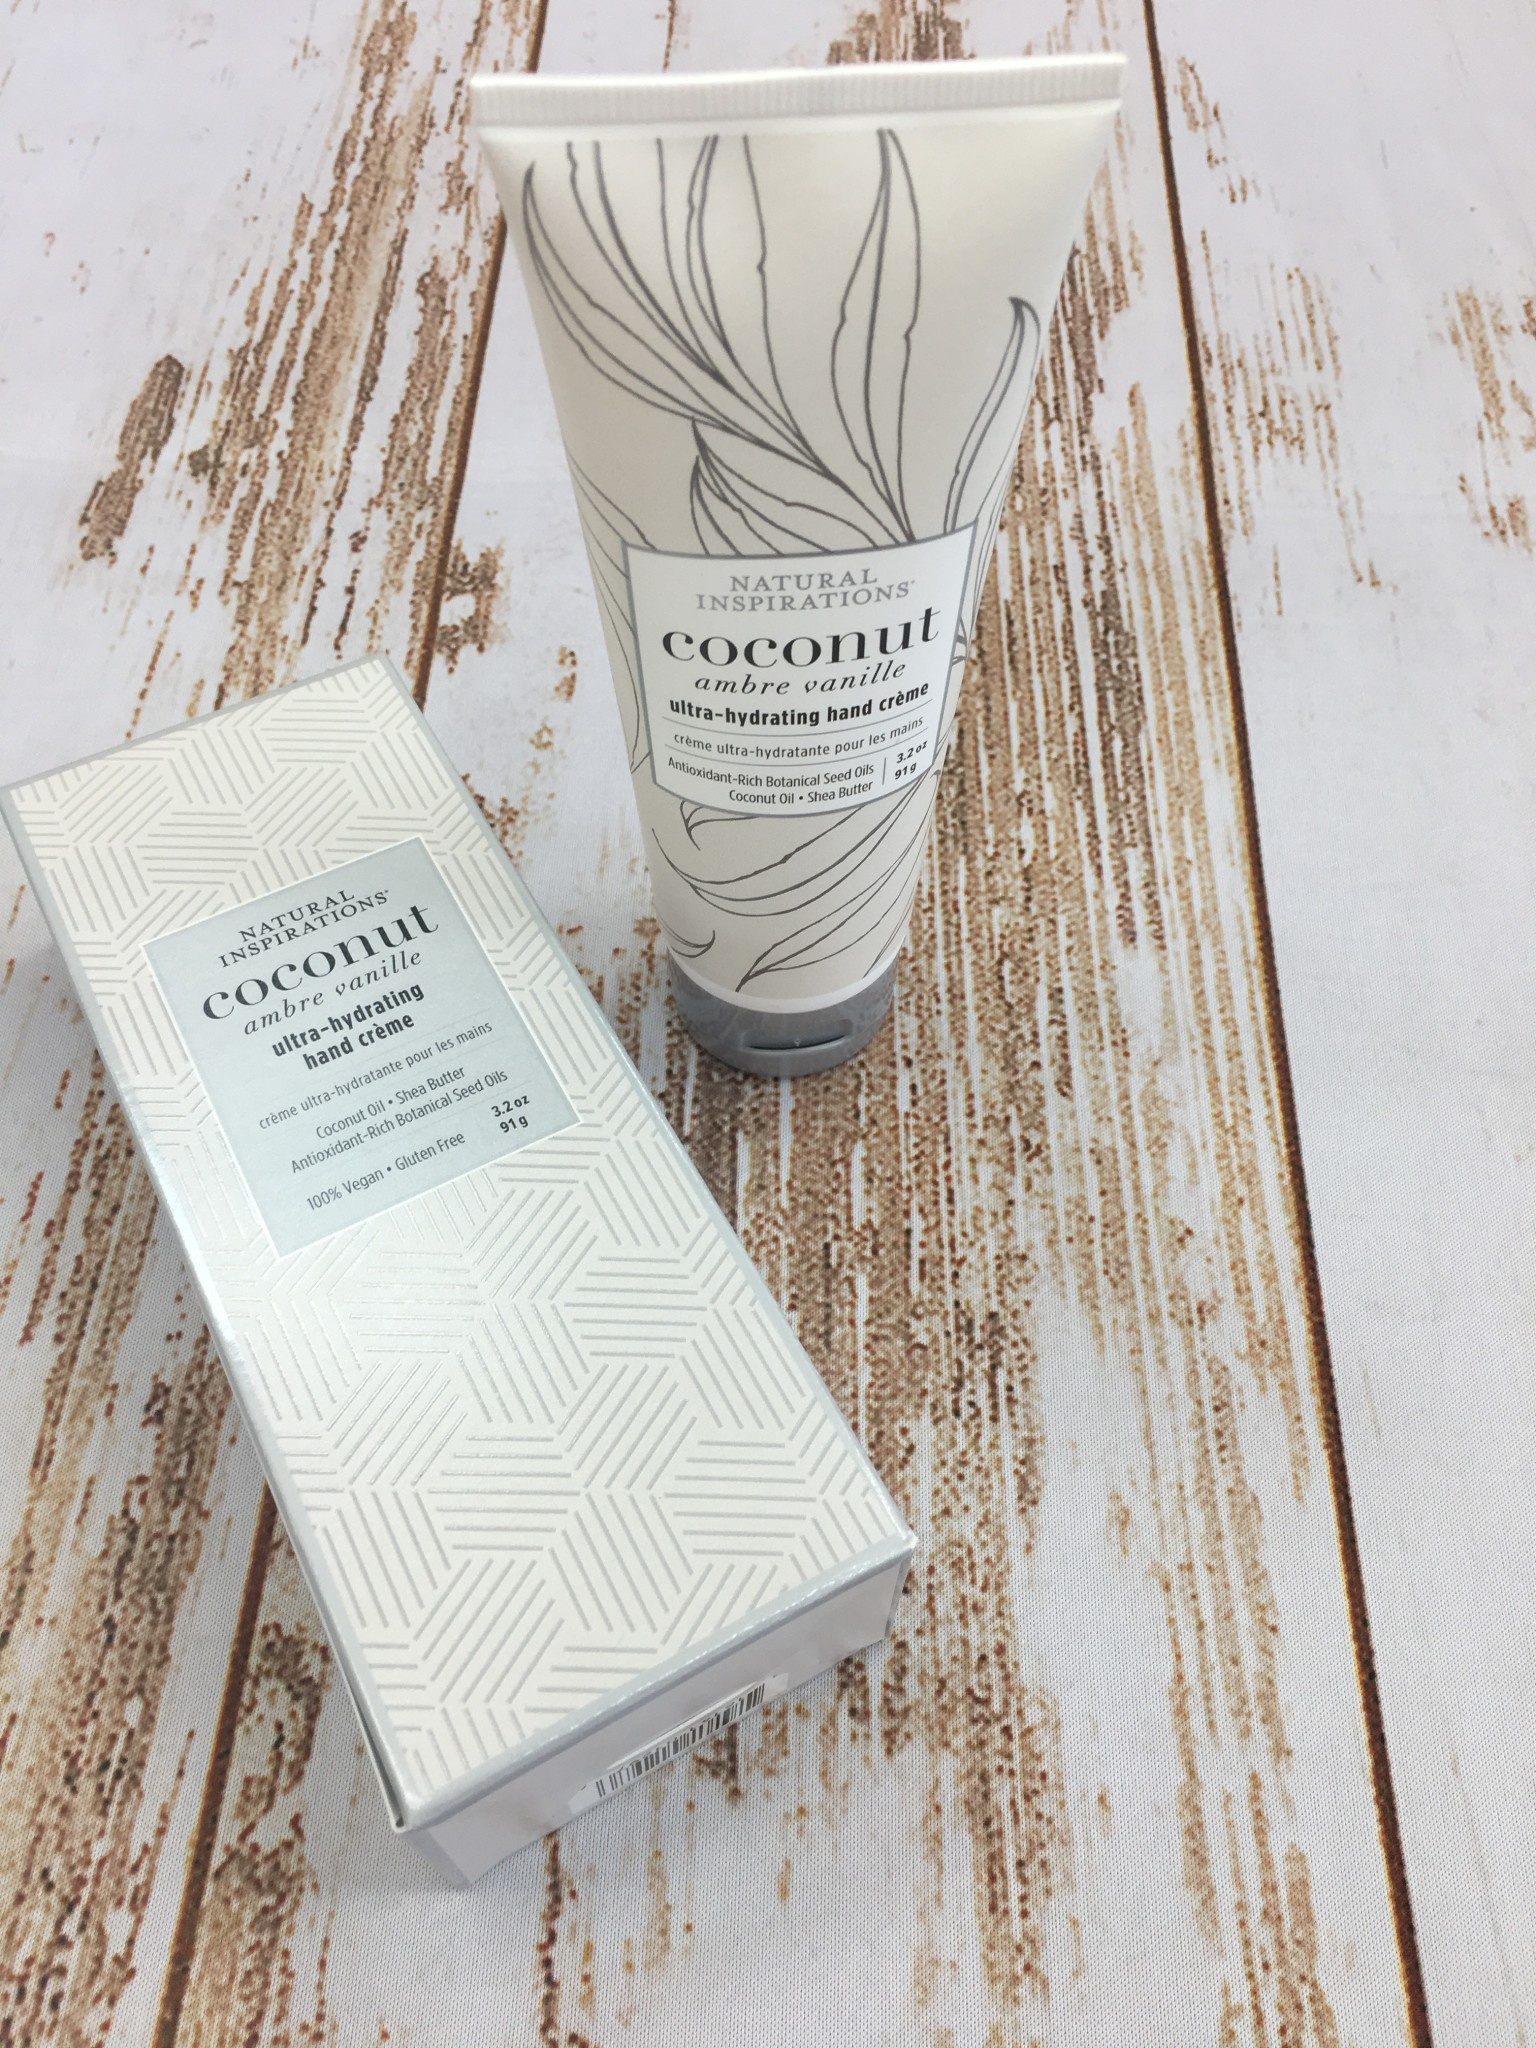 Natural Inspirations Coconut Ultra Hydrating Hand Cream 3.2 oz